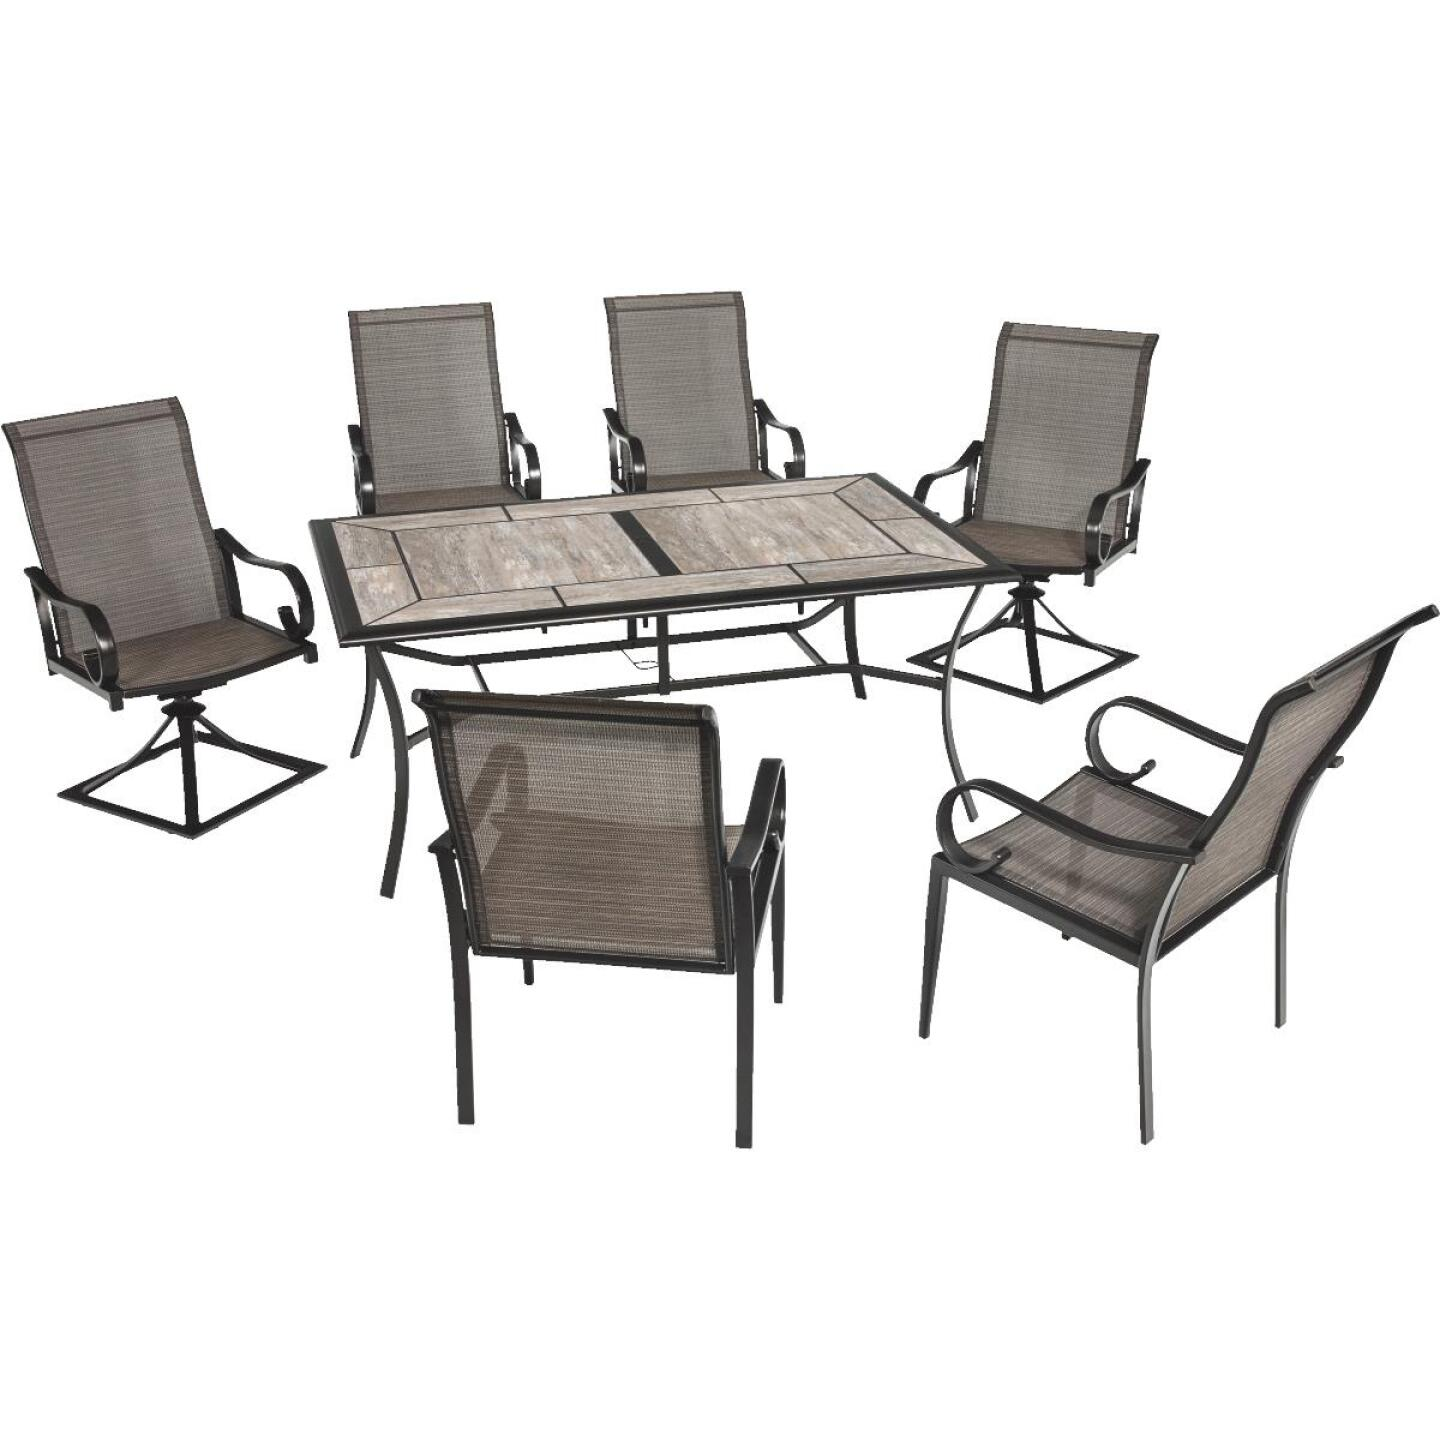 Outdoor Expressions Berkshire 7-Piece Dining Set Image 49